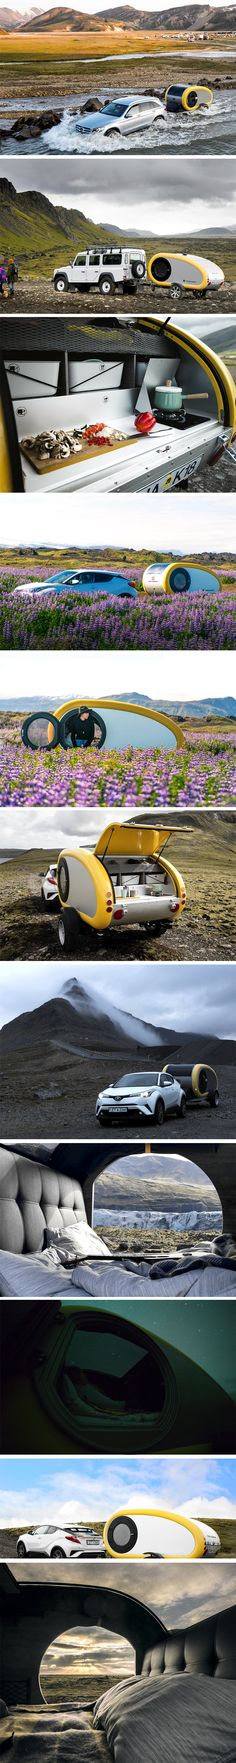 Mink Campers is a funky company providing these little pods that could make any trip through Northern Europe that little bit more idyllic. They've created a very spacious and bright interior, fitted with a luxury queen size bed and fresh Scandinavian linen. It sounds perfect, right? How about the heated interior, the Bose sound and the wifi connectivity are some of the nice extras that come standard. RENT NOW!